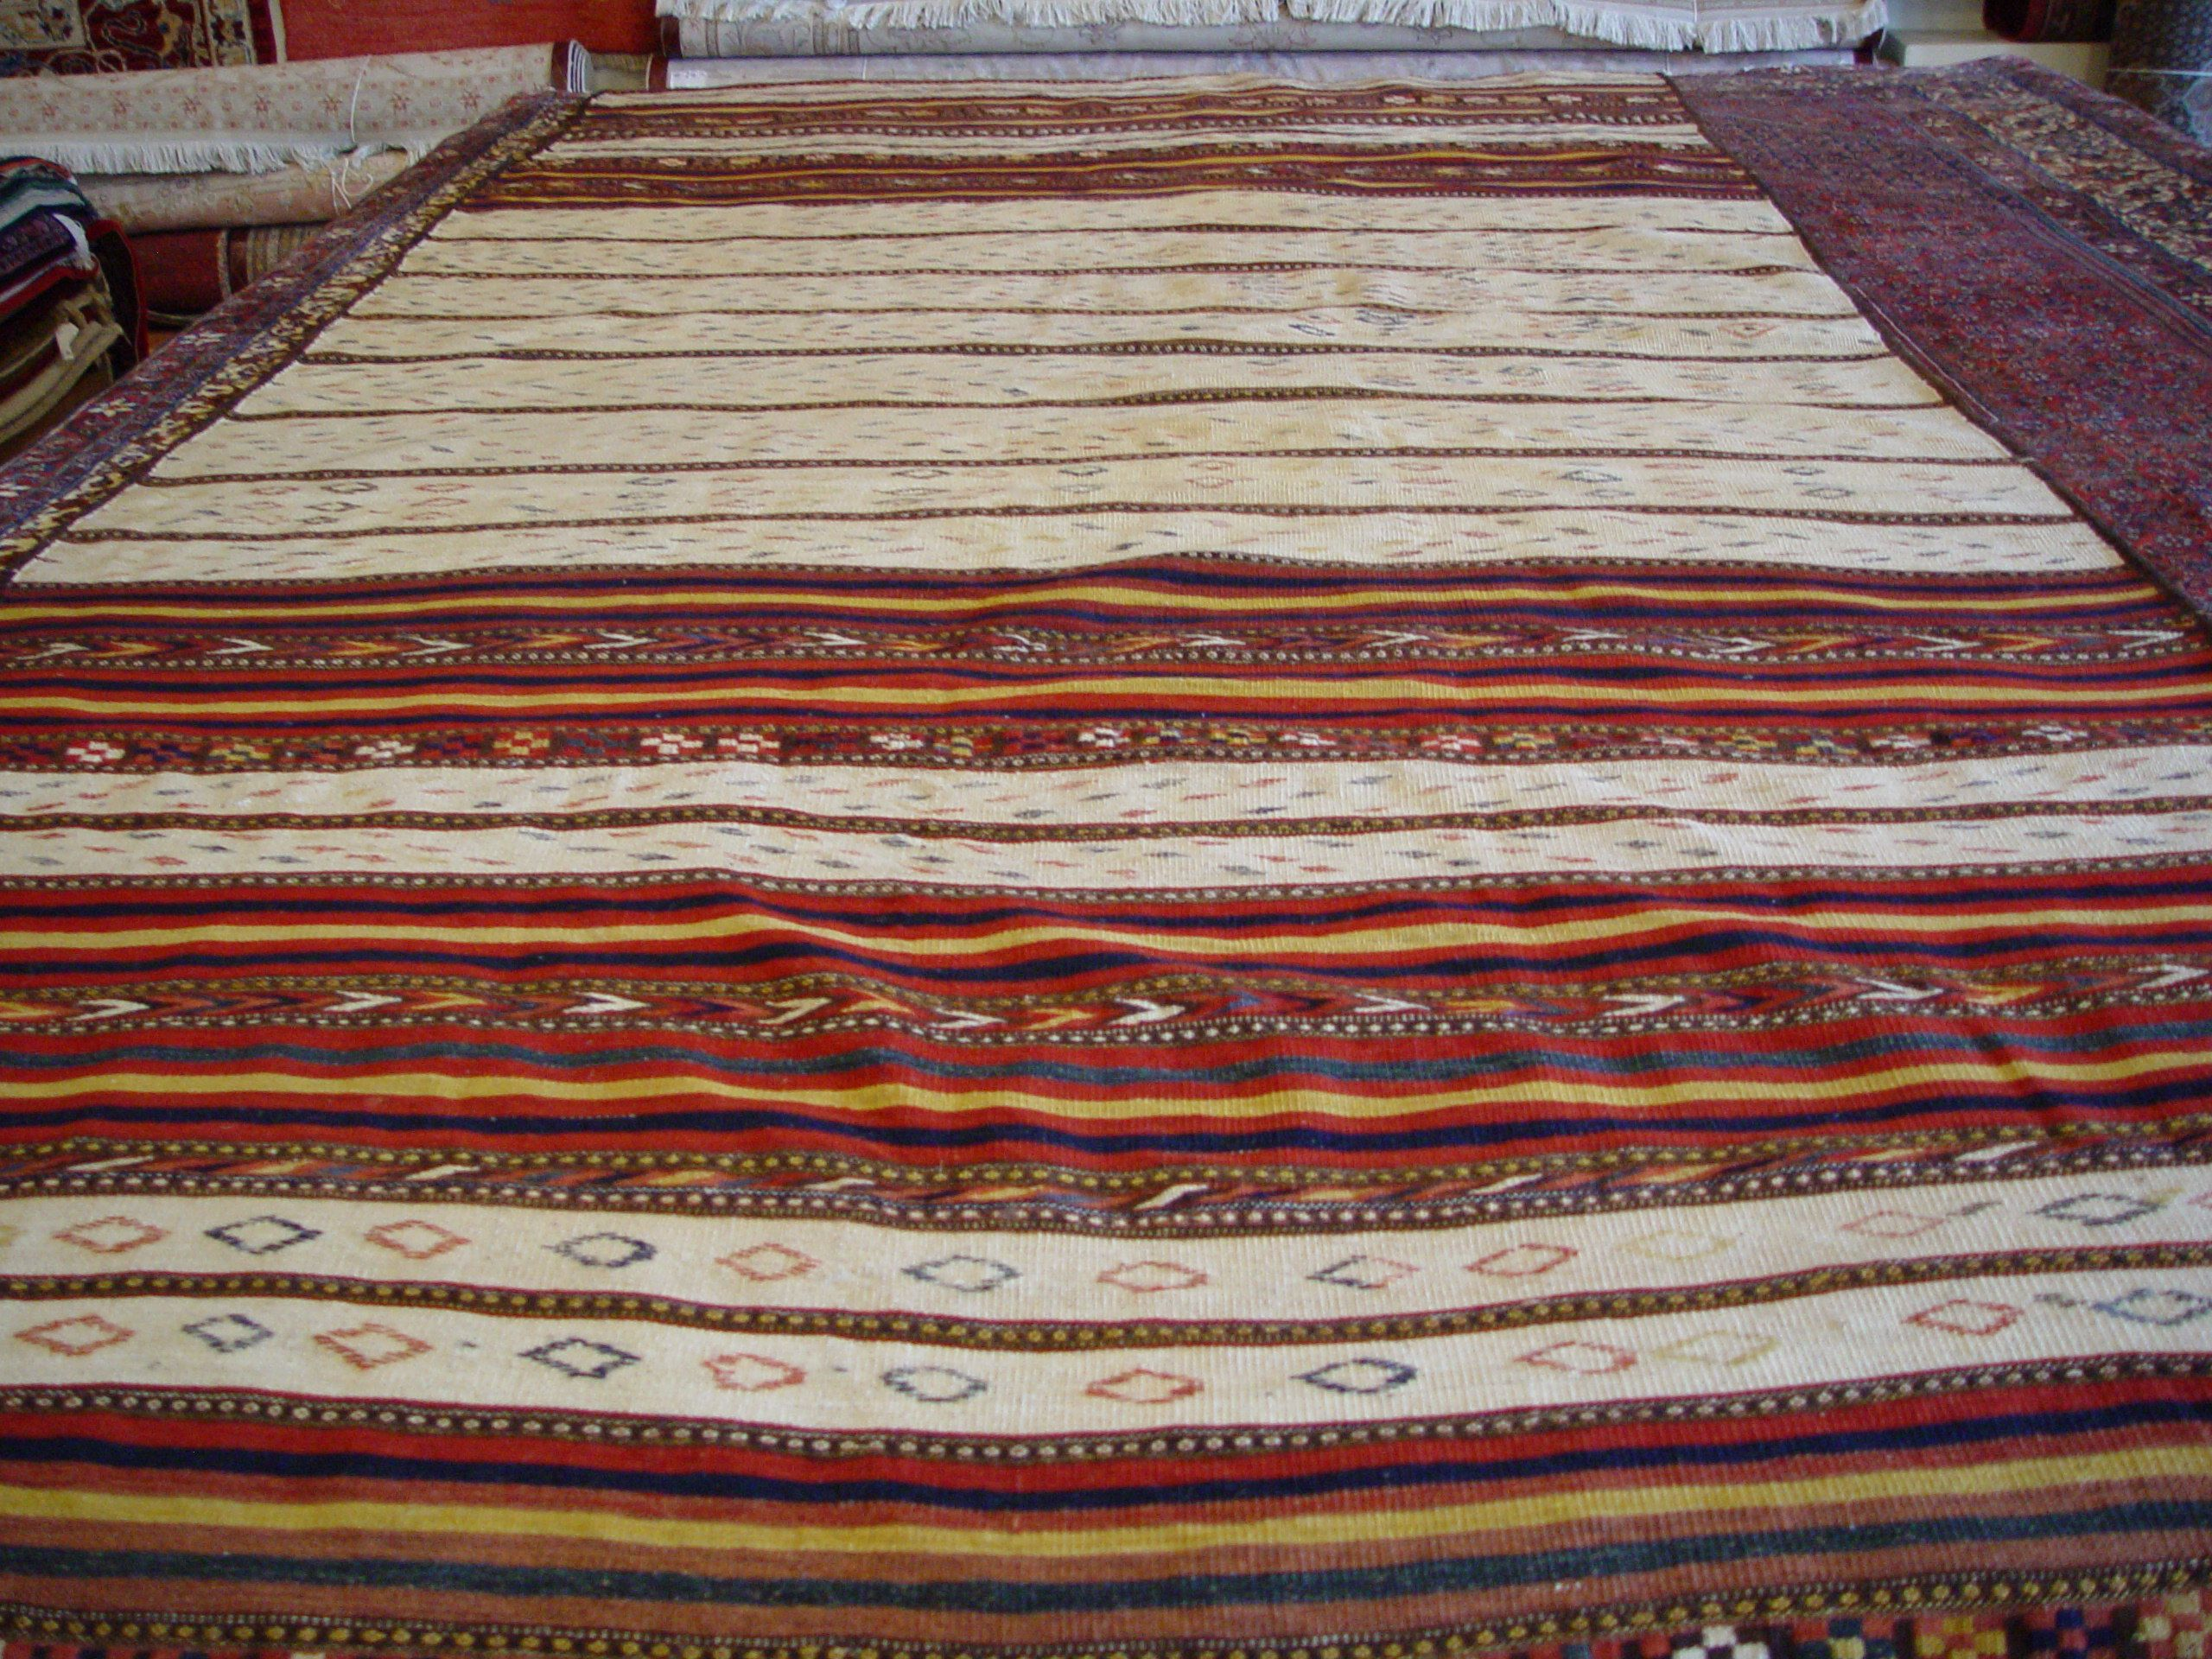 A Collector Quality Persian Flat Weave Sumac Kilim A Flat Weave Rug Means There Is No Pile Rugs Flat Weave Kilim